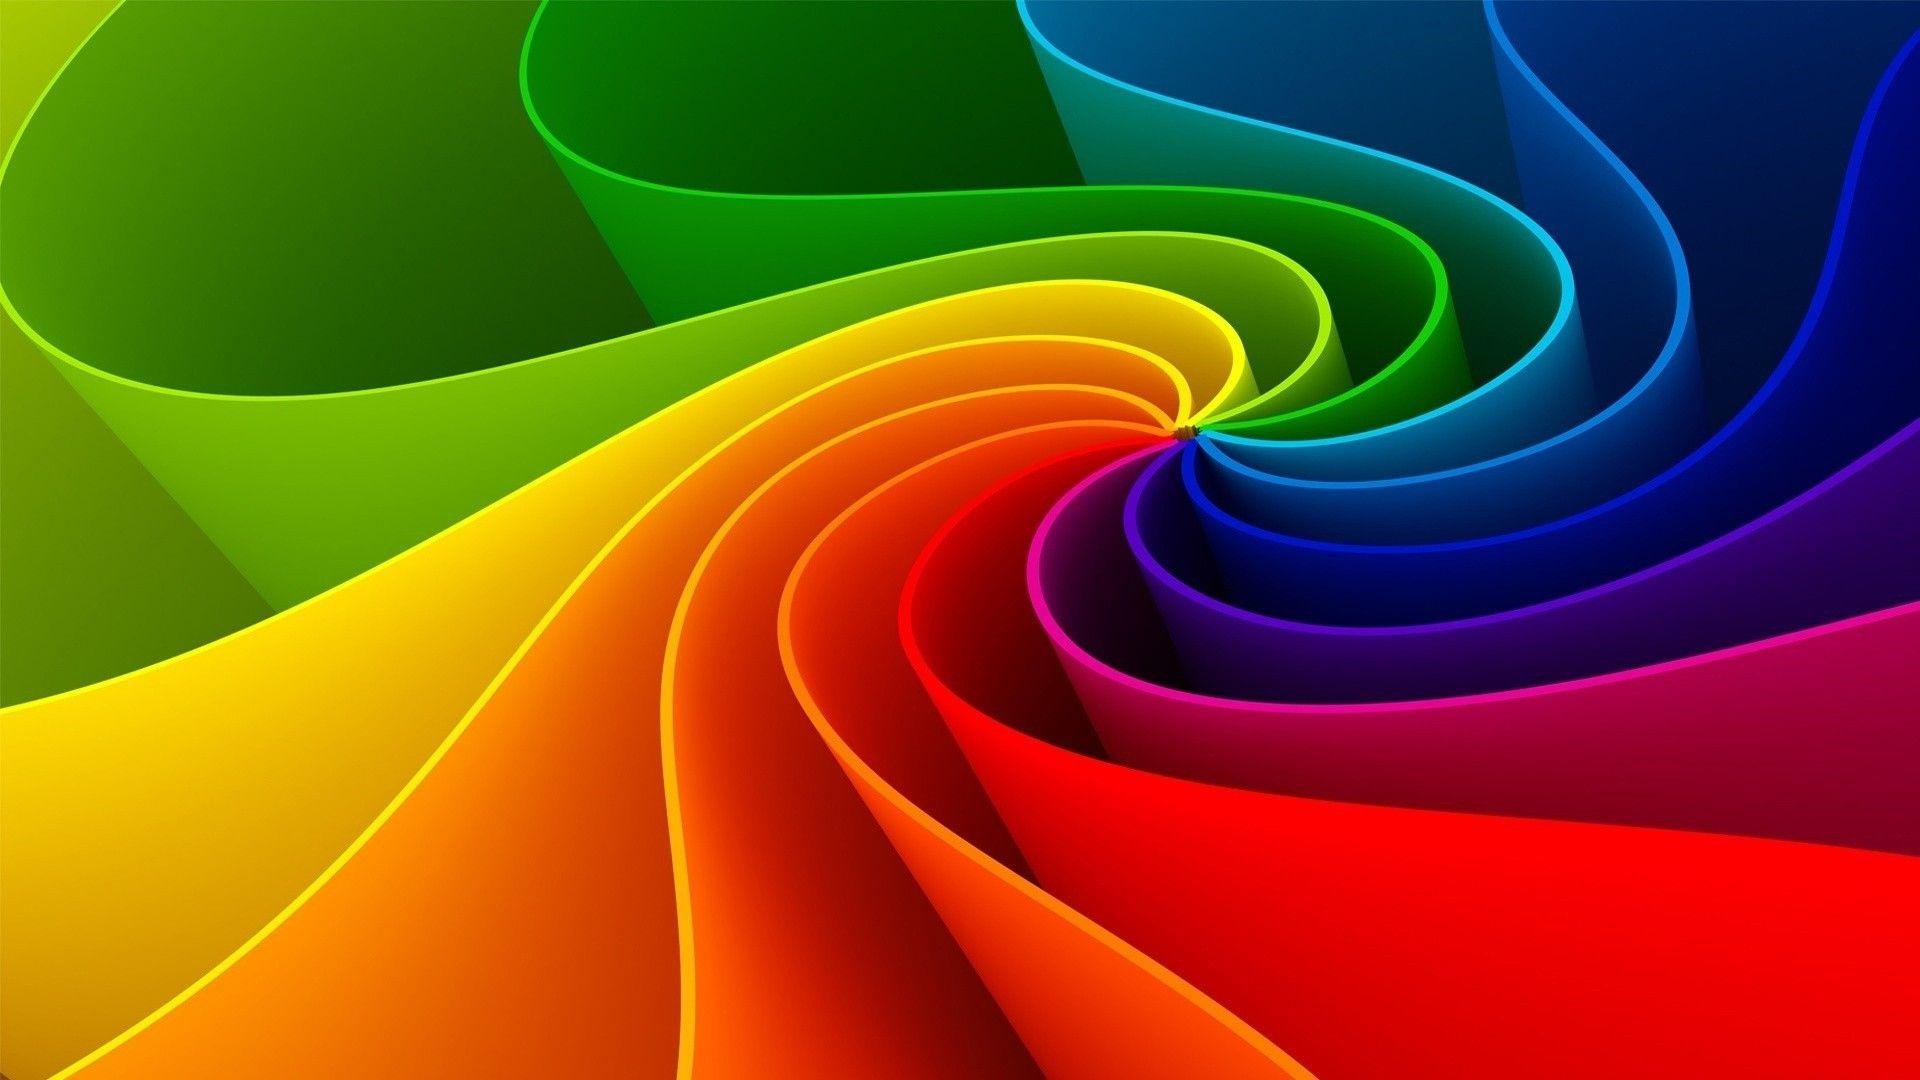 Awesome 4k Wallpaper Android Tablet wallpapers to download for free greenvirals